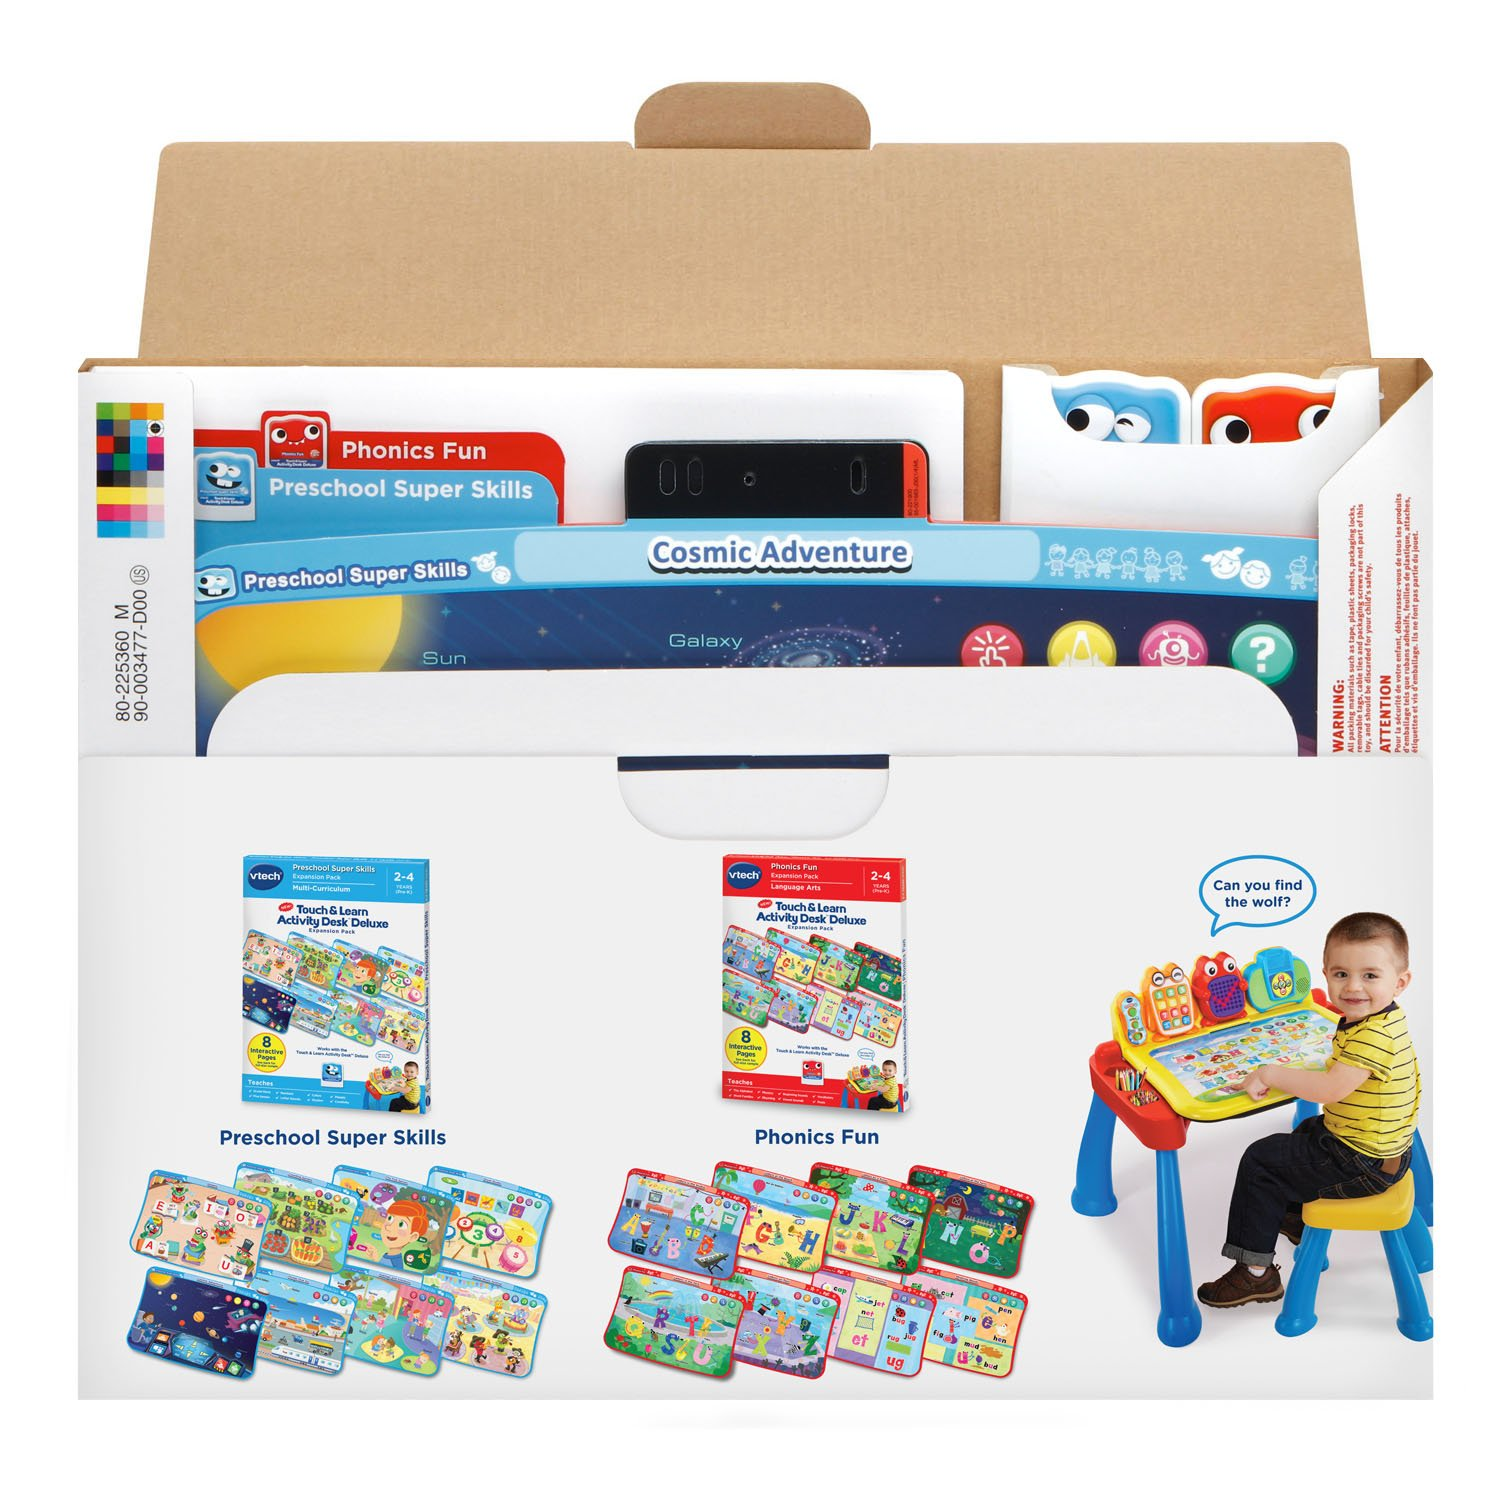 VTech Touch & Learn Activity Desk Deluxe 2-in-1 Preschool Bundle Expansion Pack for Age 2-4 by VTech (Image #5)